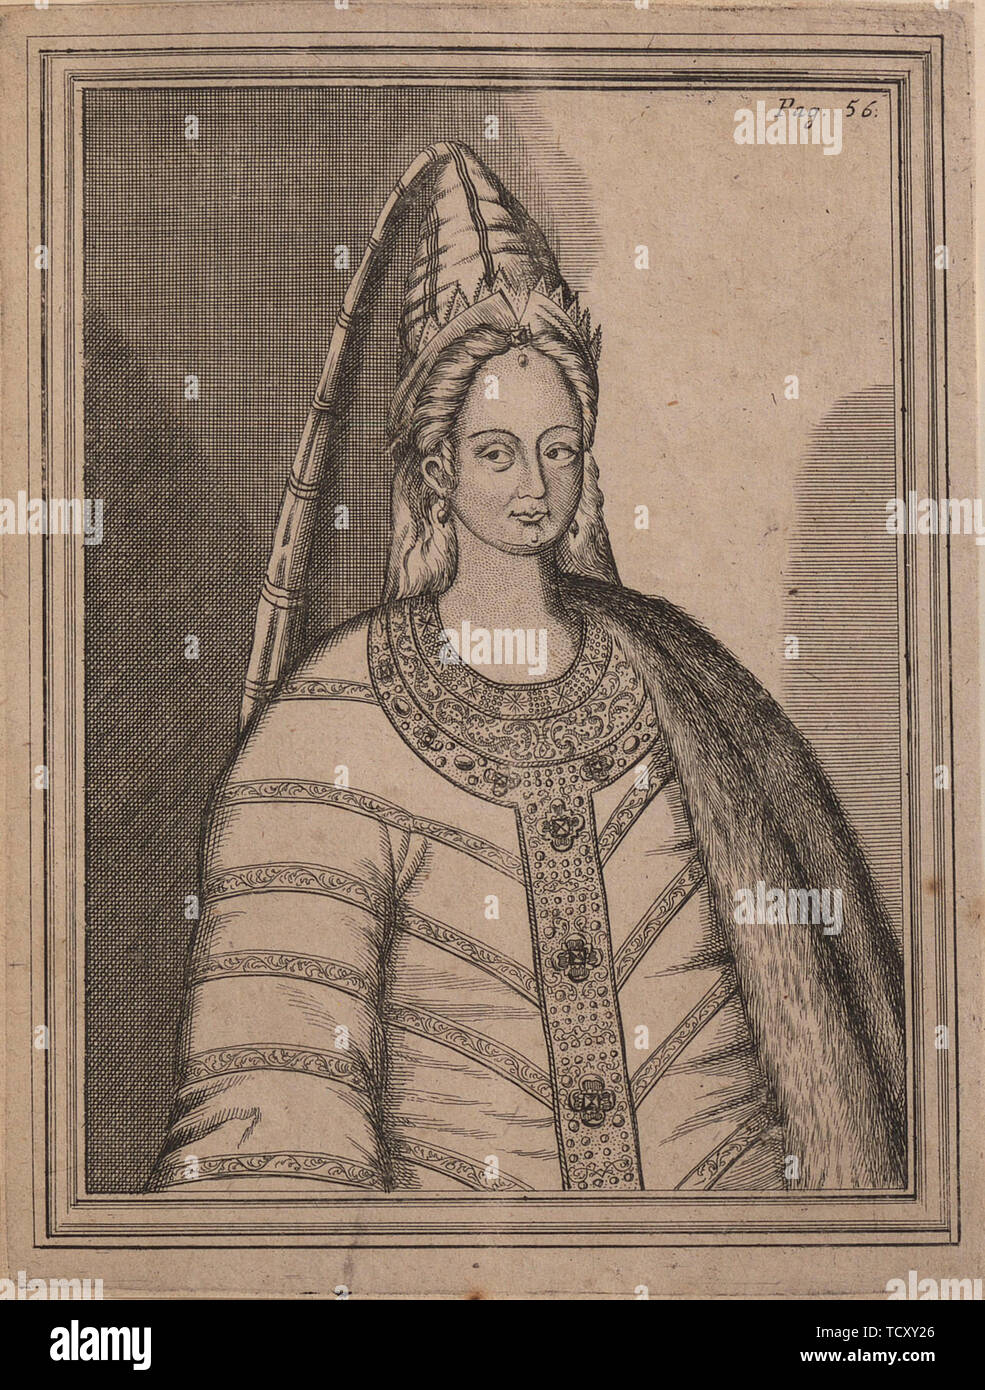 Tsarina Irina Godunova (1557-1603), the wife of Tsar Feodor I of Russia. Found in the Collection of Royal Collection, London. - Stock Image